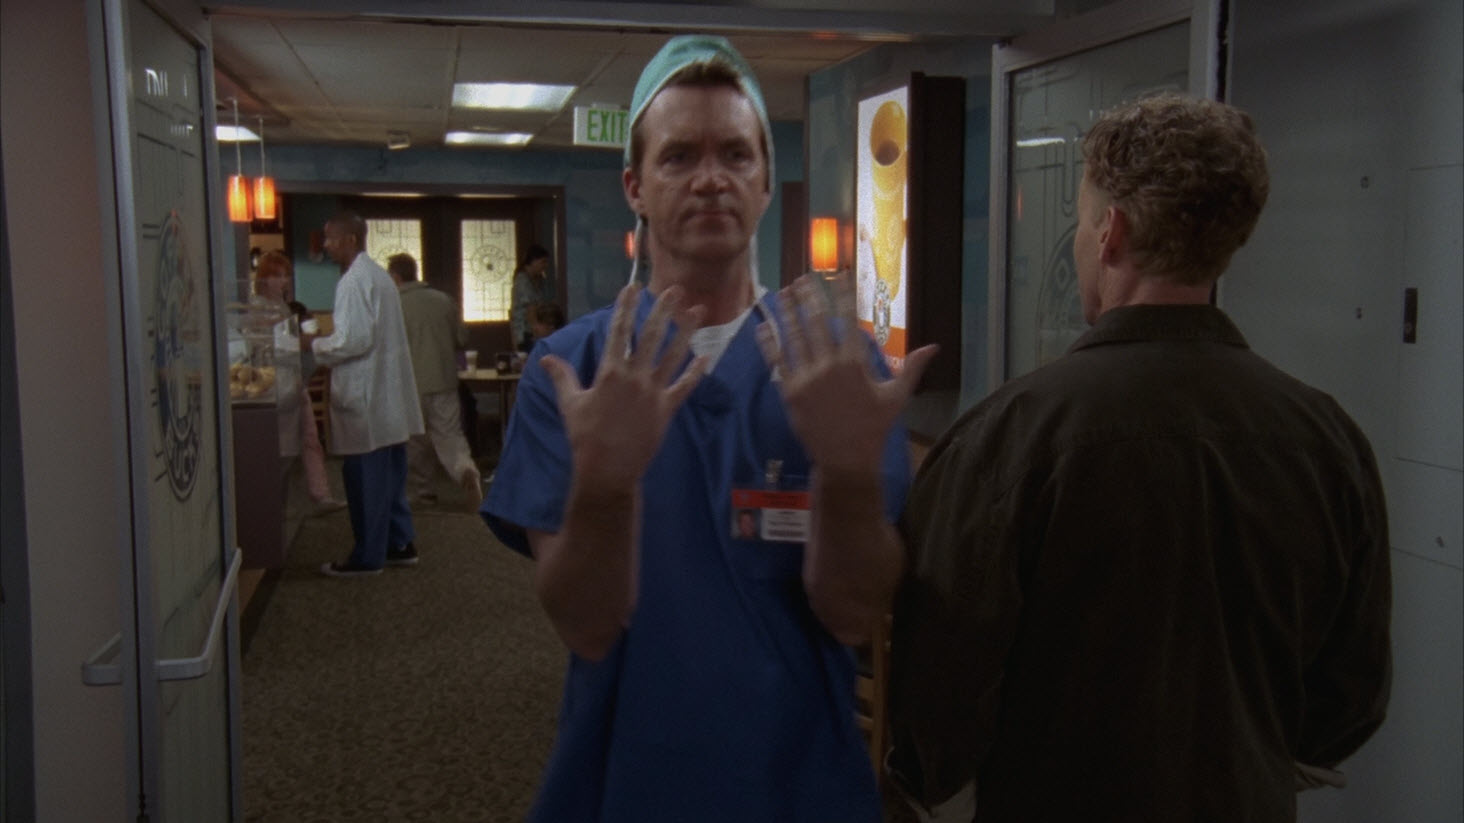 image x janitor in scrubs jpg scrubs wiki fandom powered file 8x6 janitor in scrubs jpg